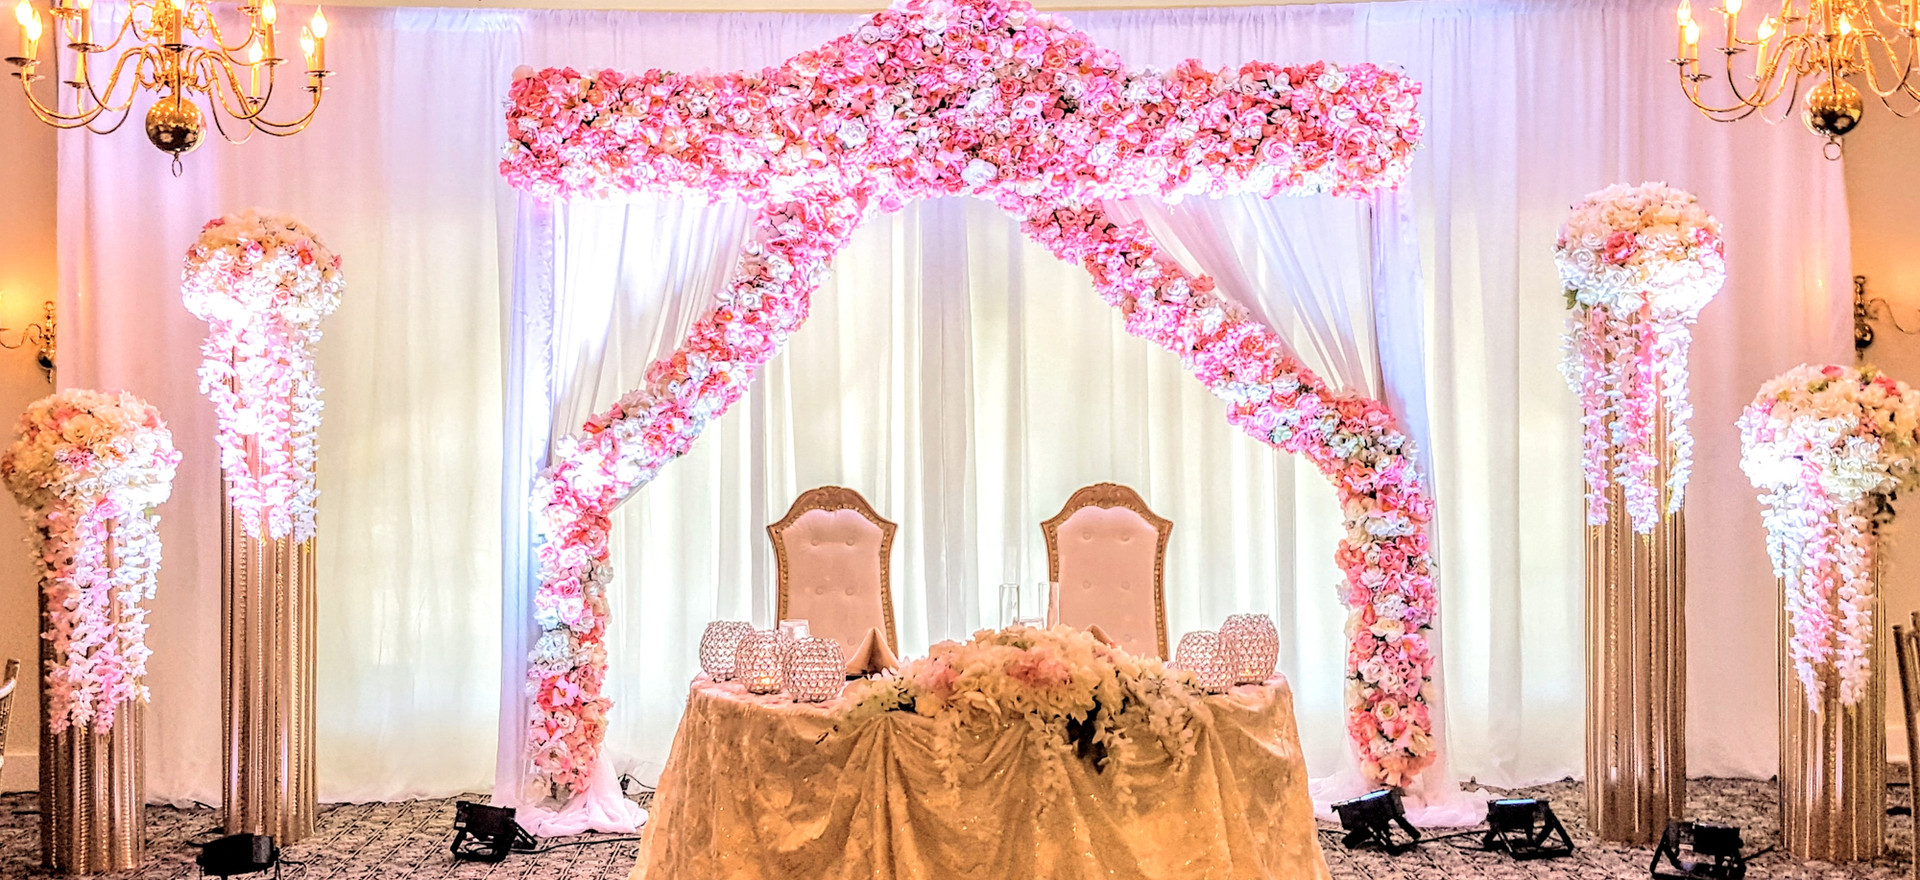 flower arch with 4 gold pillars